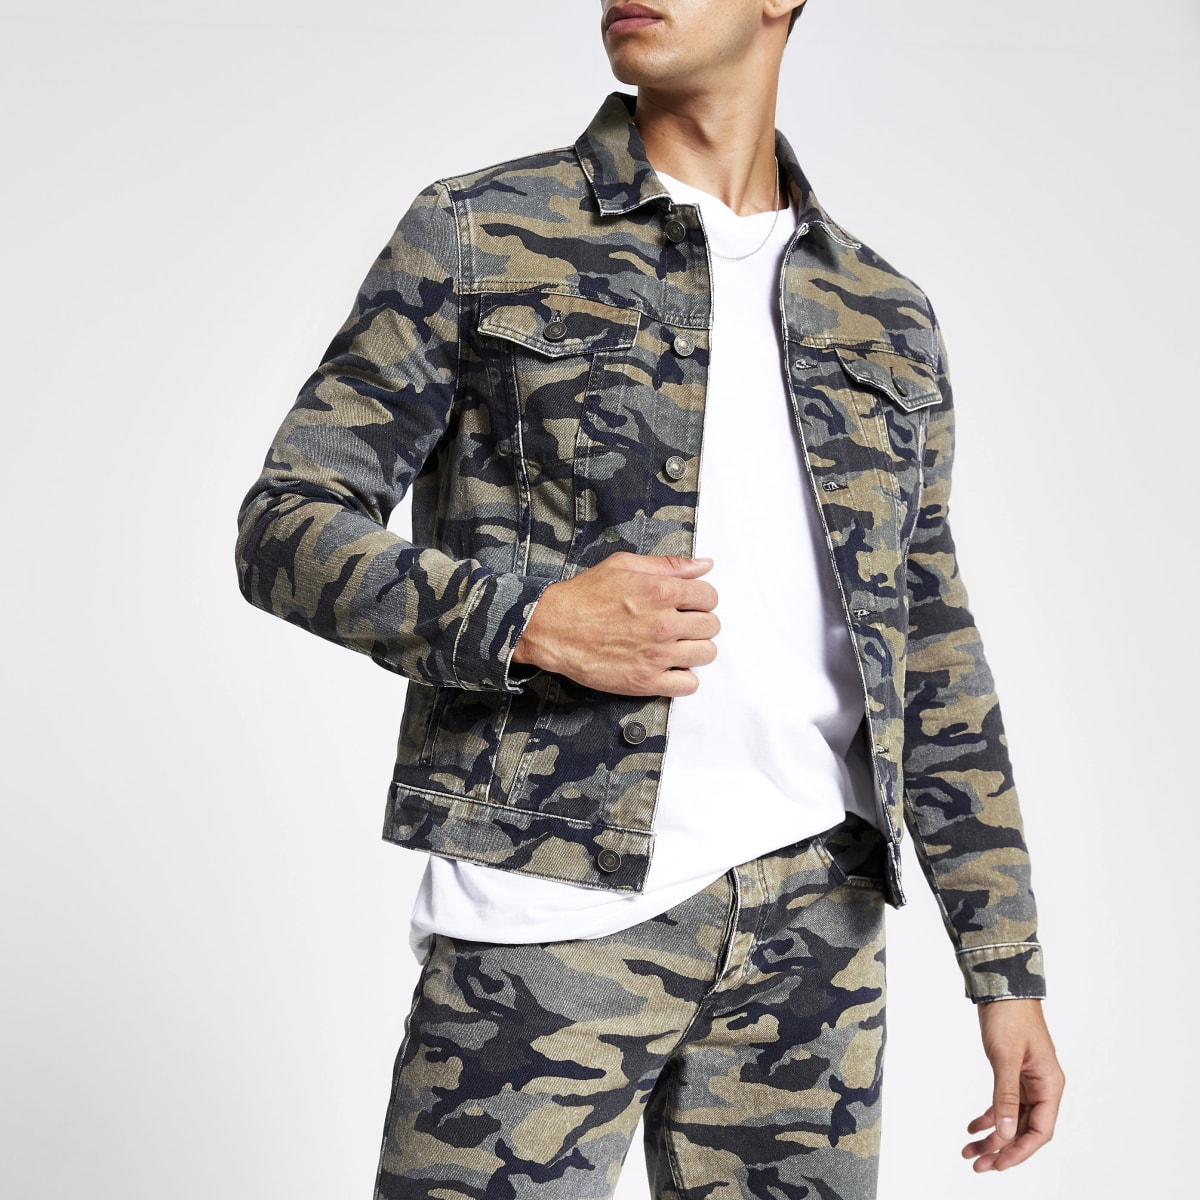 Khaki camo denim jacket